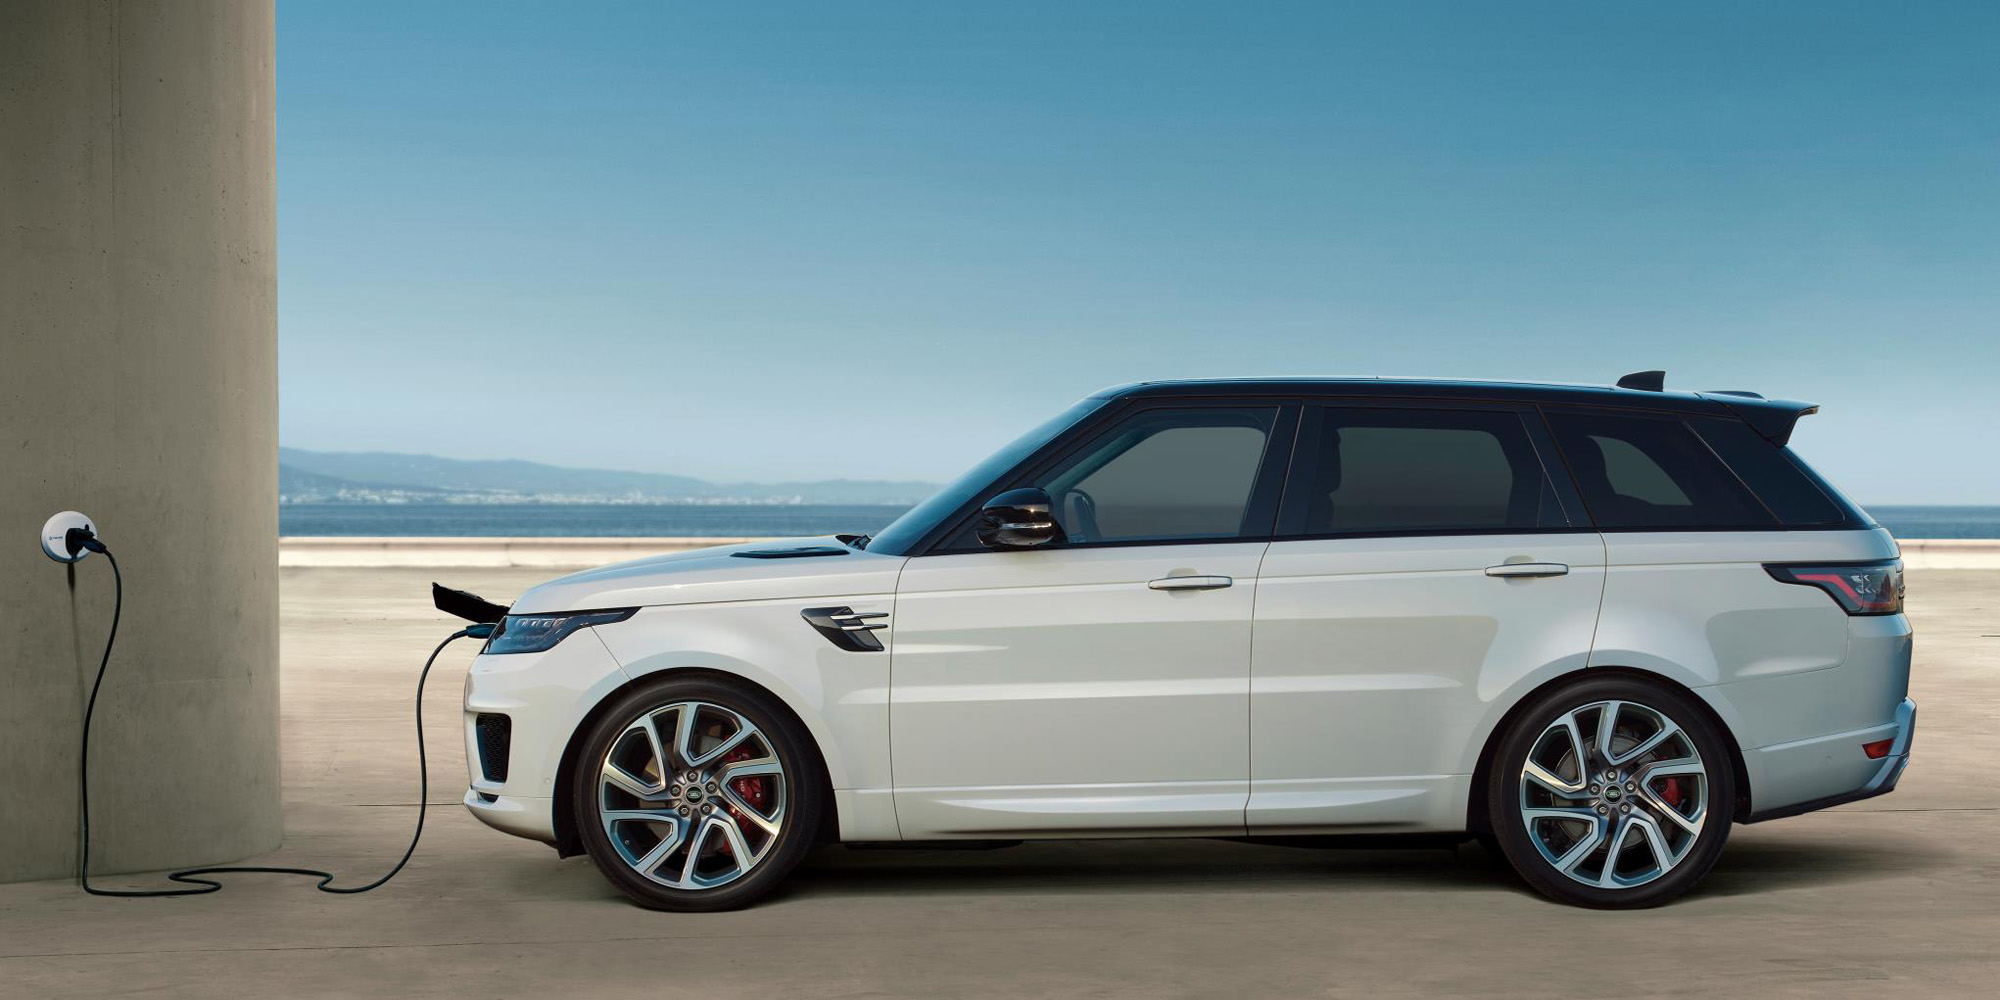 the range rover sport plug in hybrid electric SUV signals an